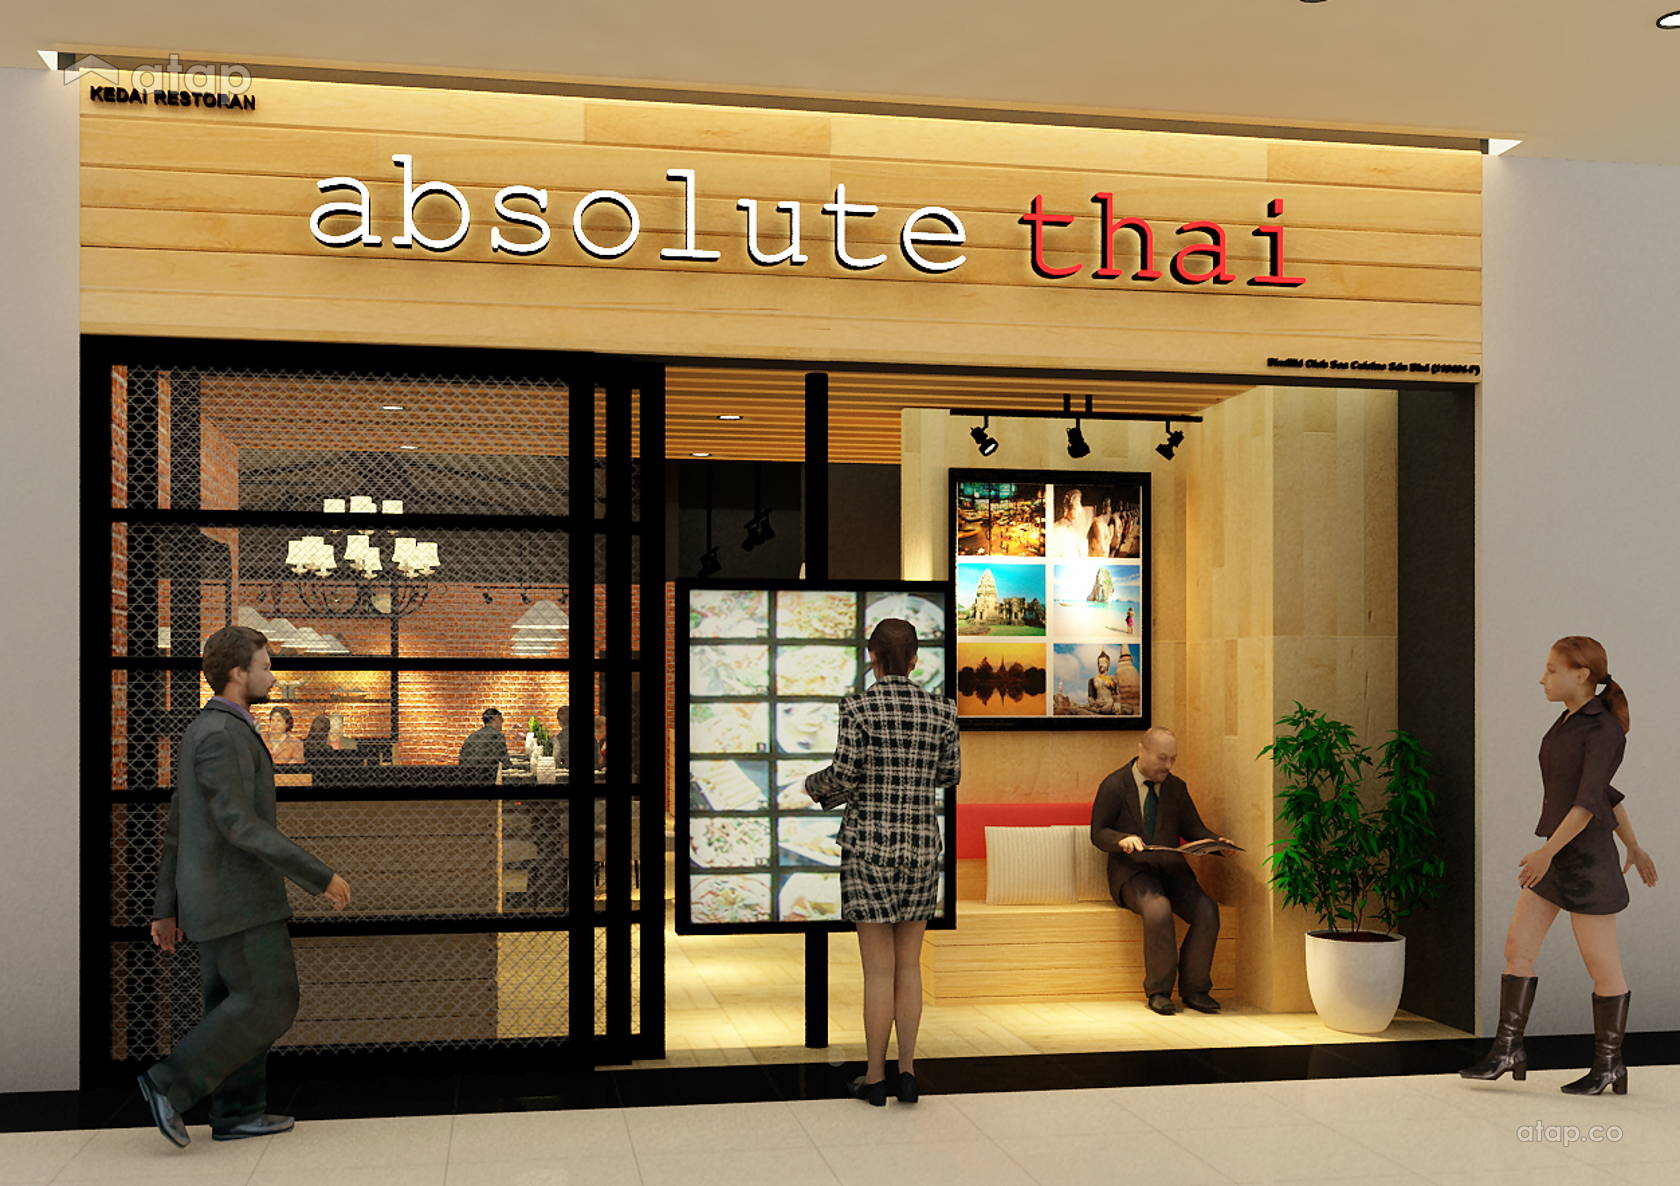 Best thai restaurant interior design ideas photos for Thai decorations ideas